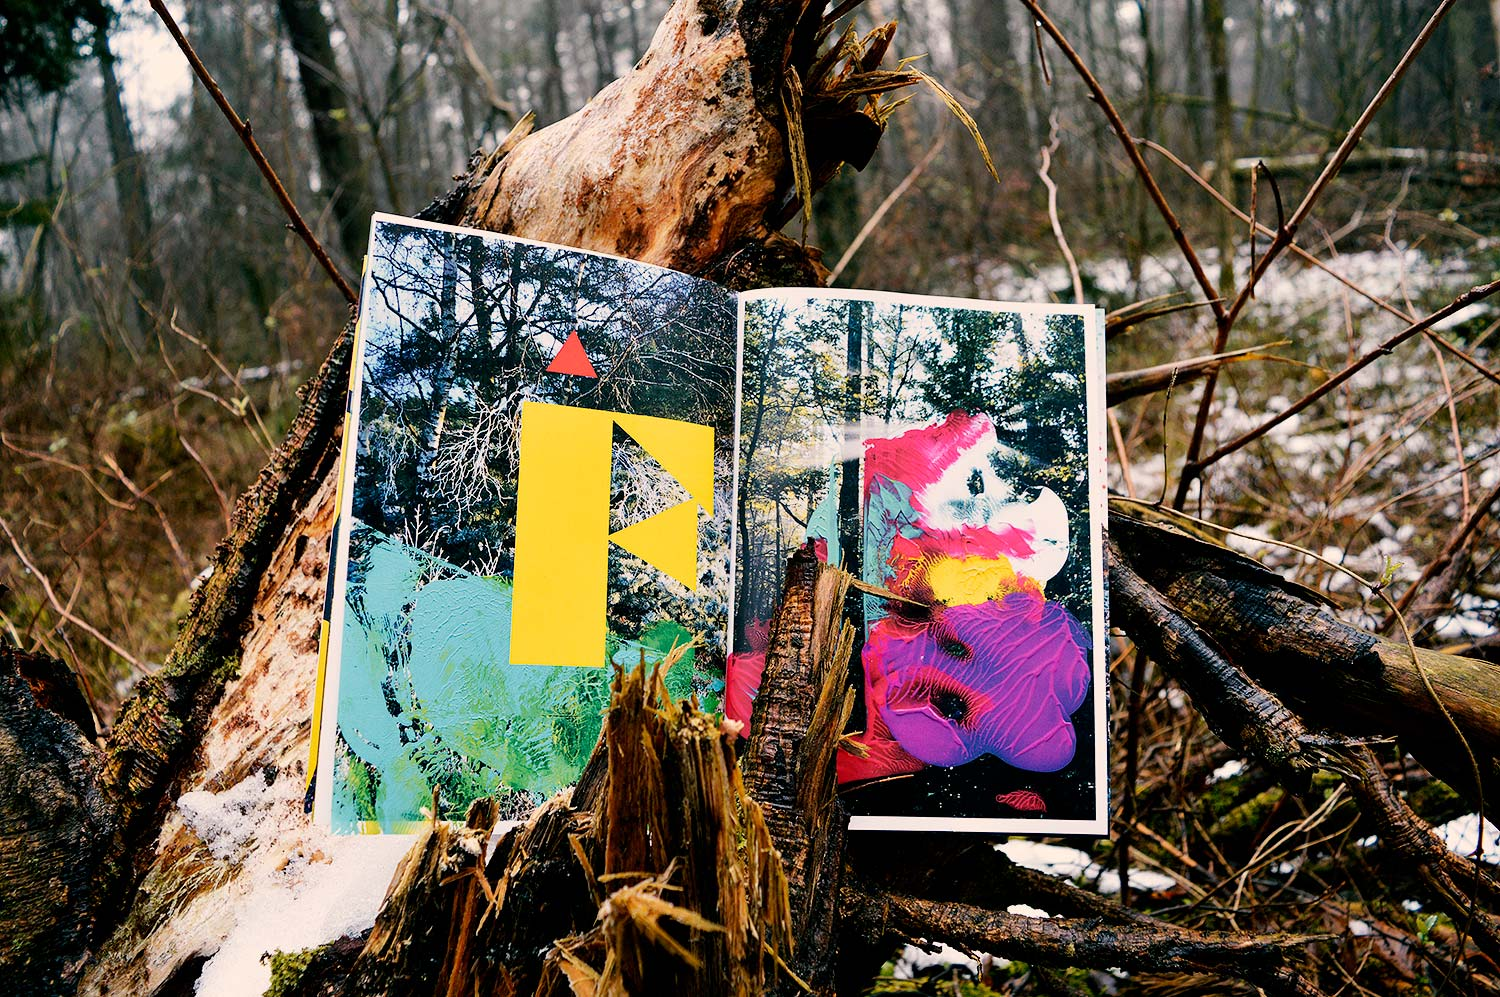 IN THE WOODS 5